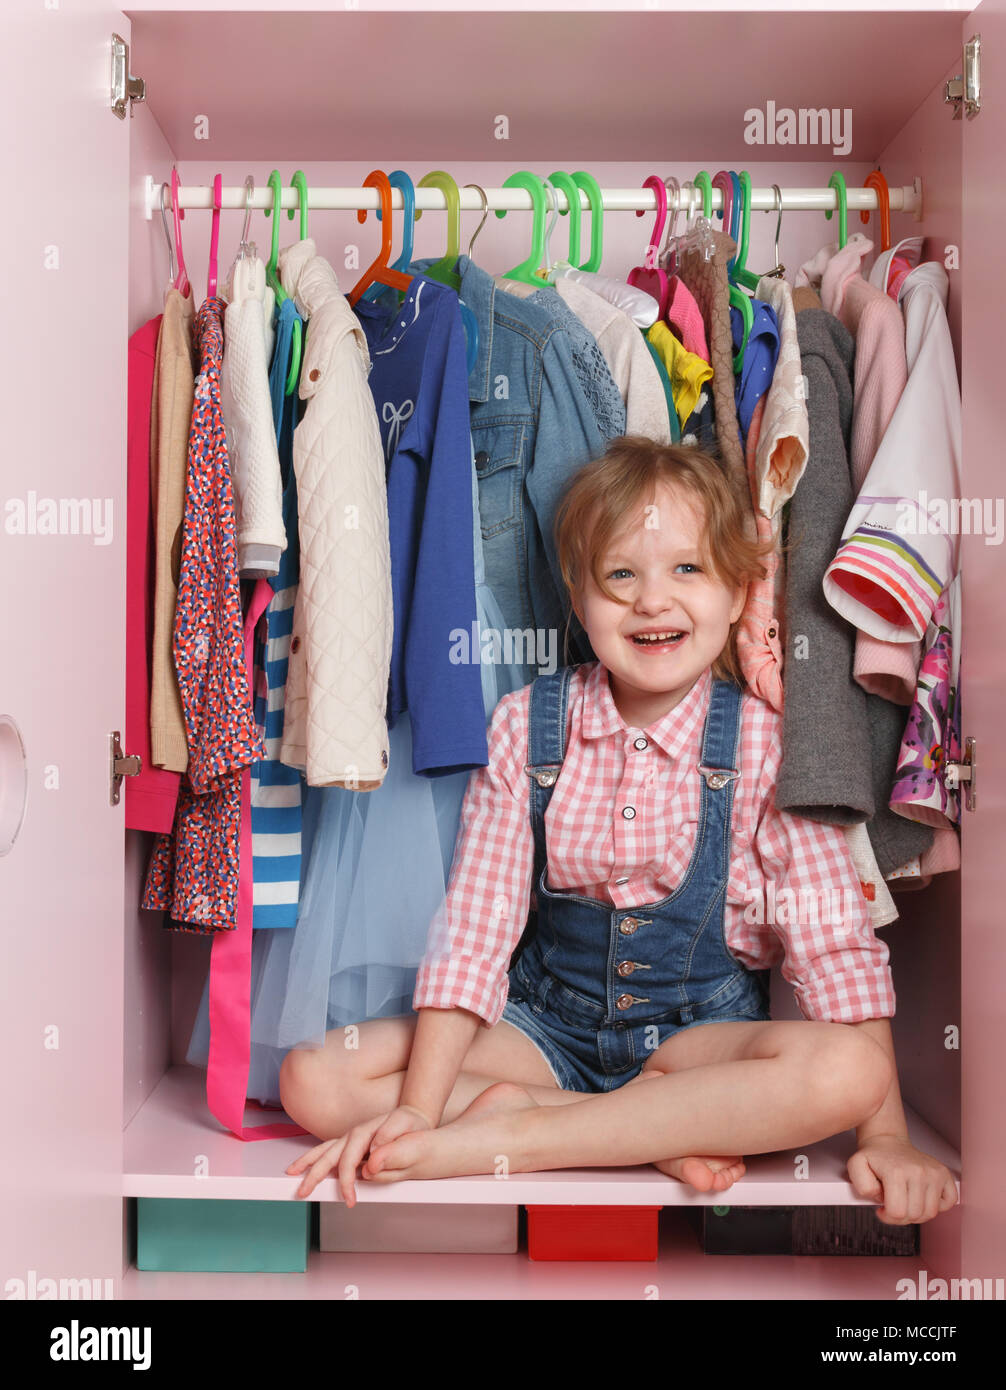 A little girl is sitting in a closet with a children's department. Storage system for children's things - Stock Image